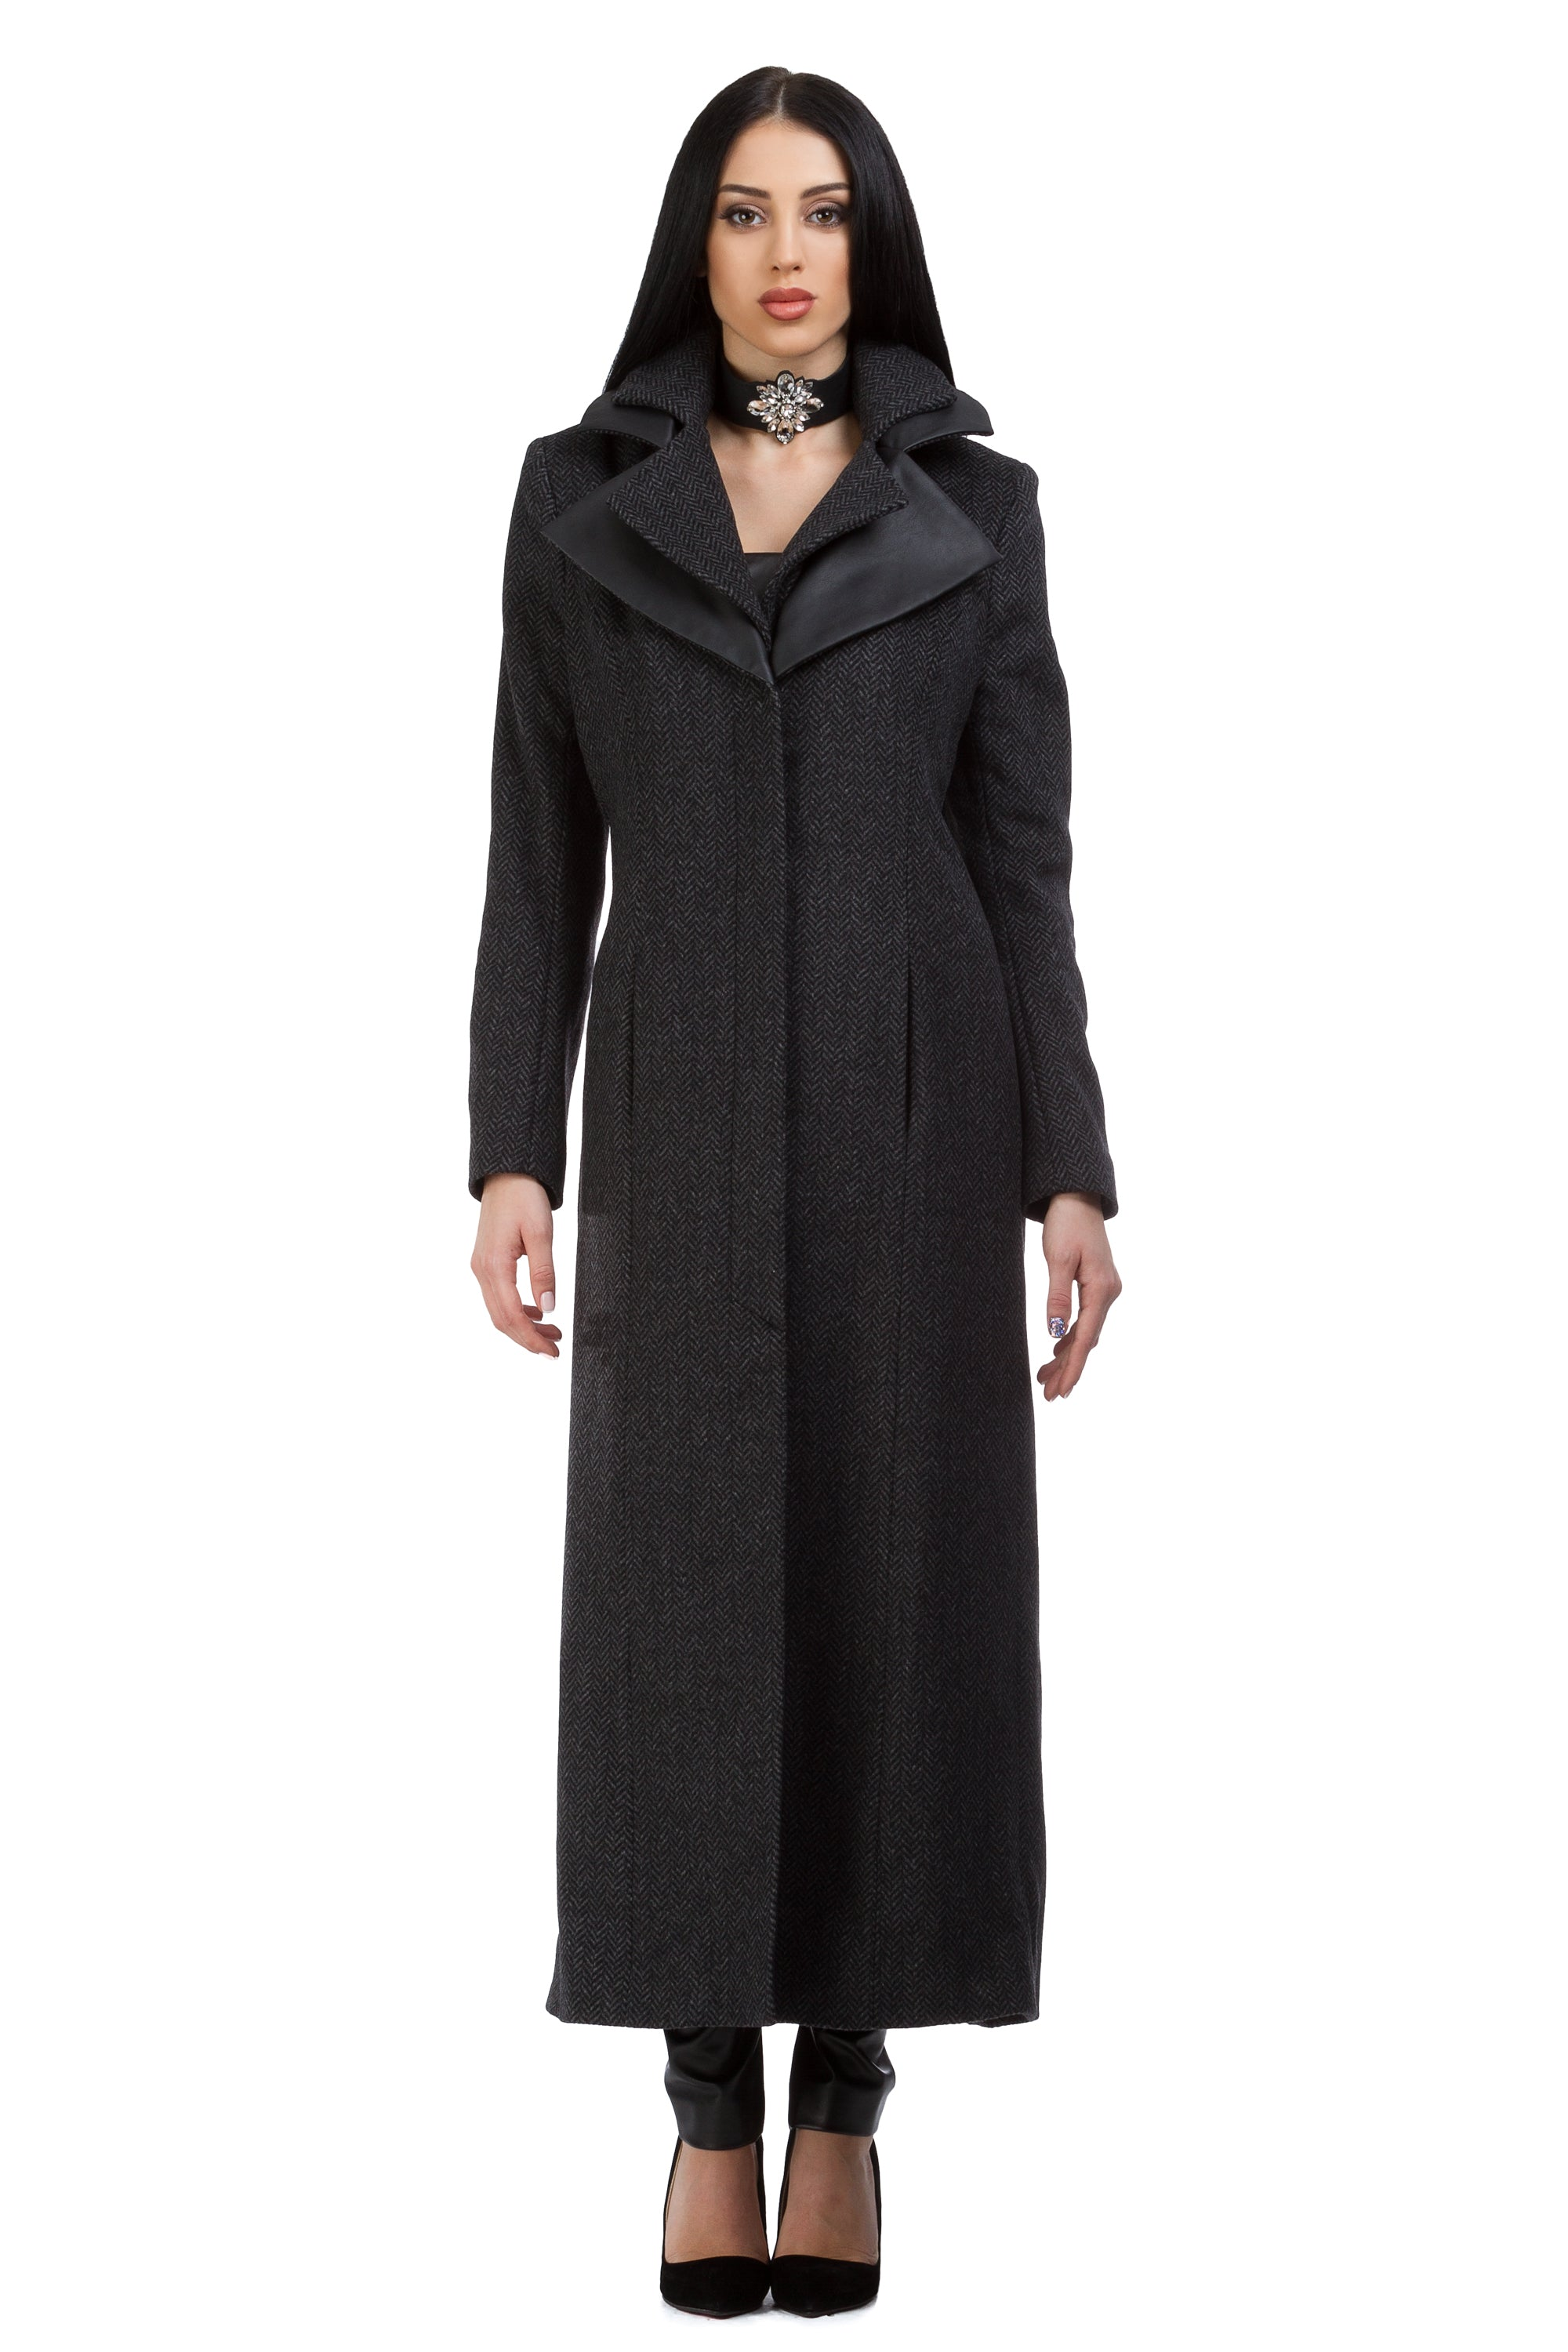 Long black wool coat with a triple collar